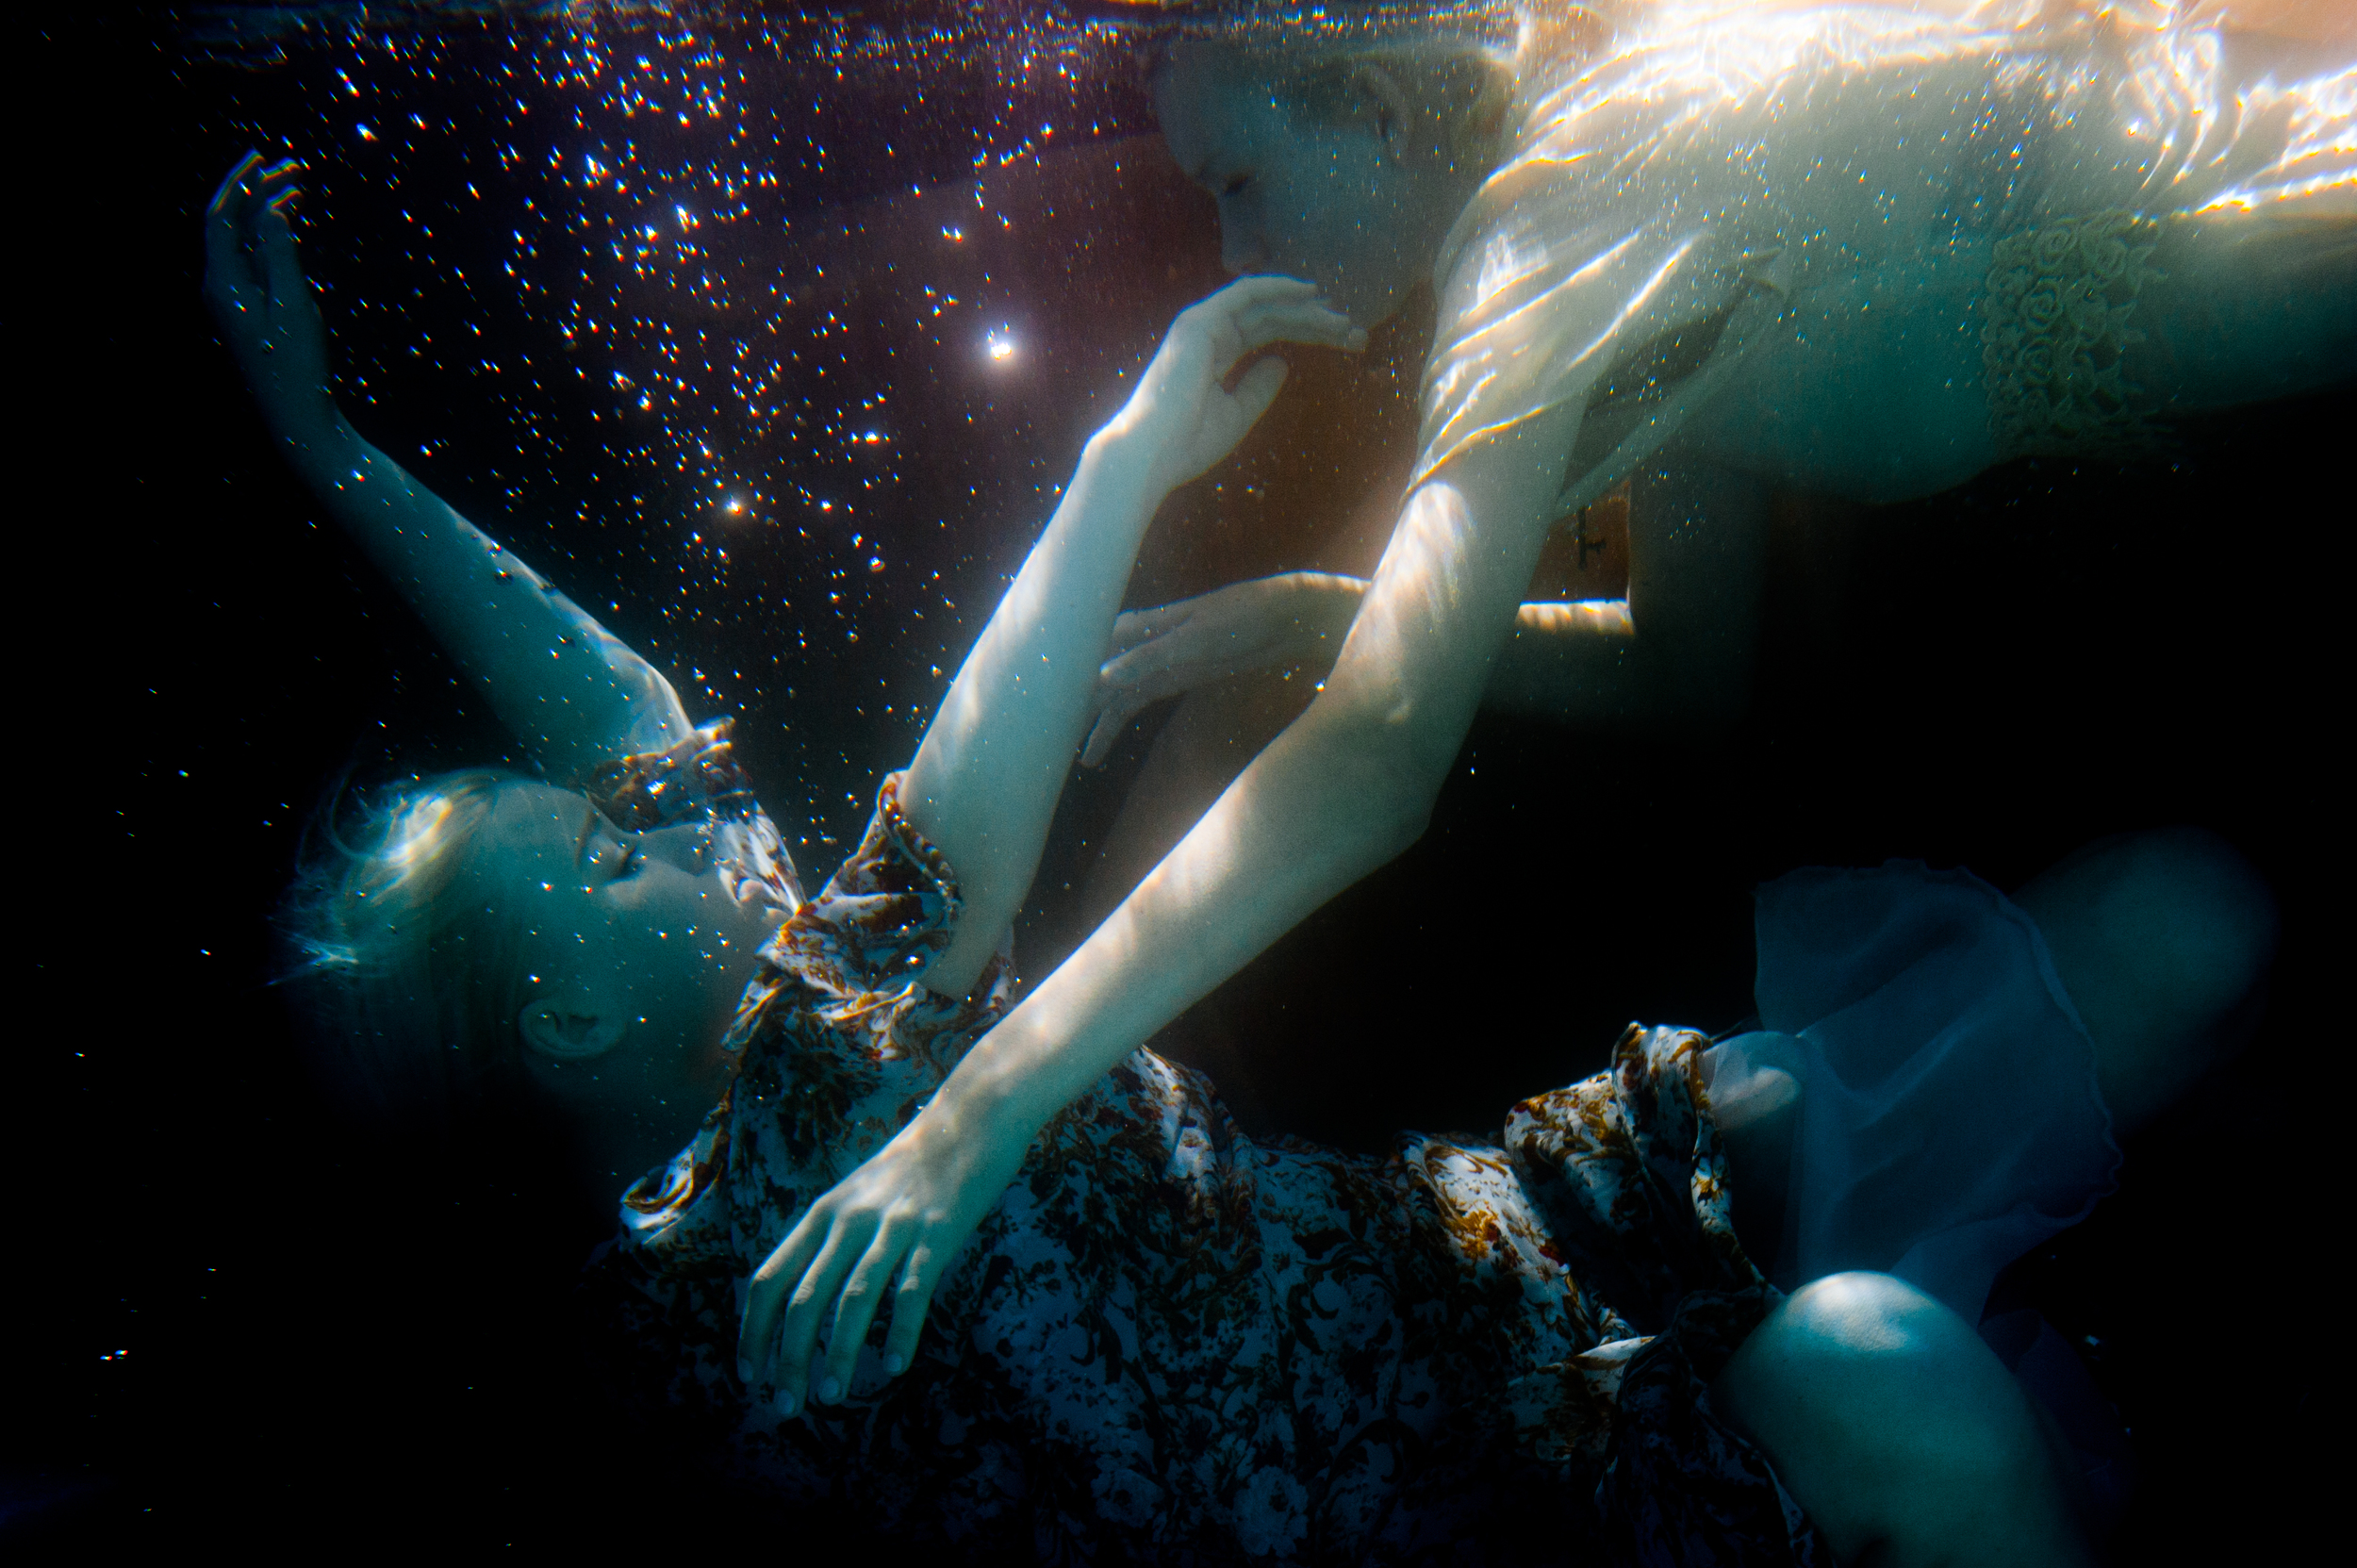 JTNoir_Photography_underwater_twins_6_2015-10.jpg